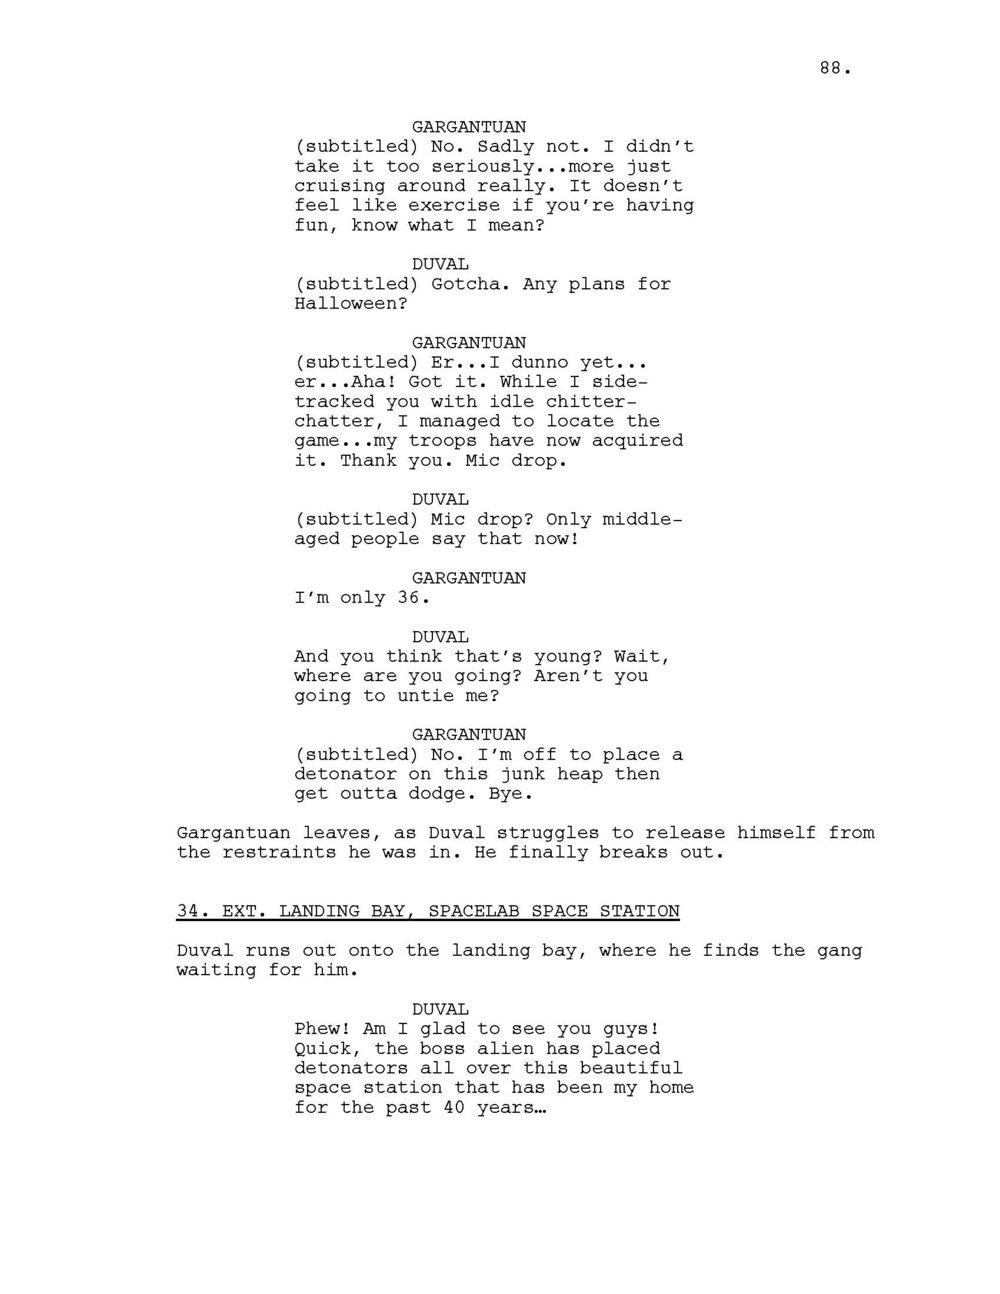 INVISIBLE WORLD SCRIPT_Page_089.jpg